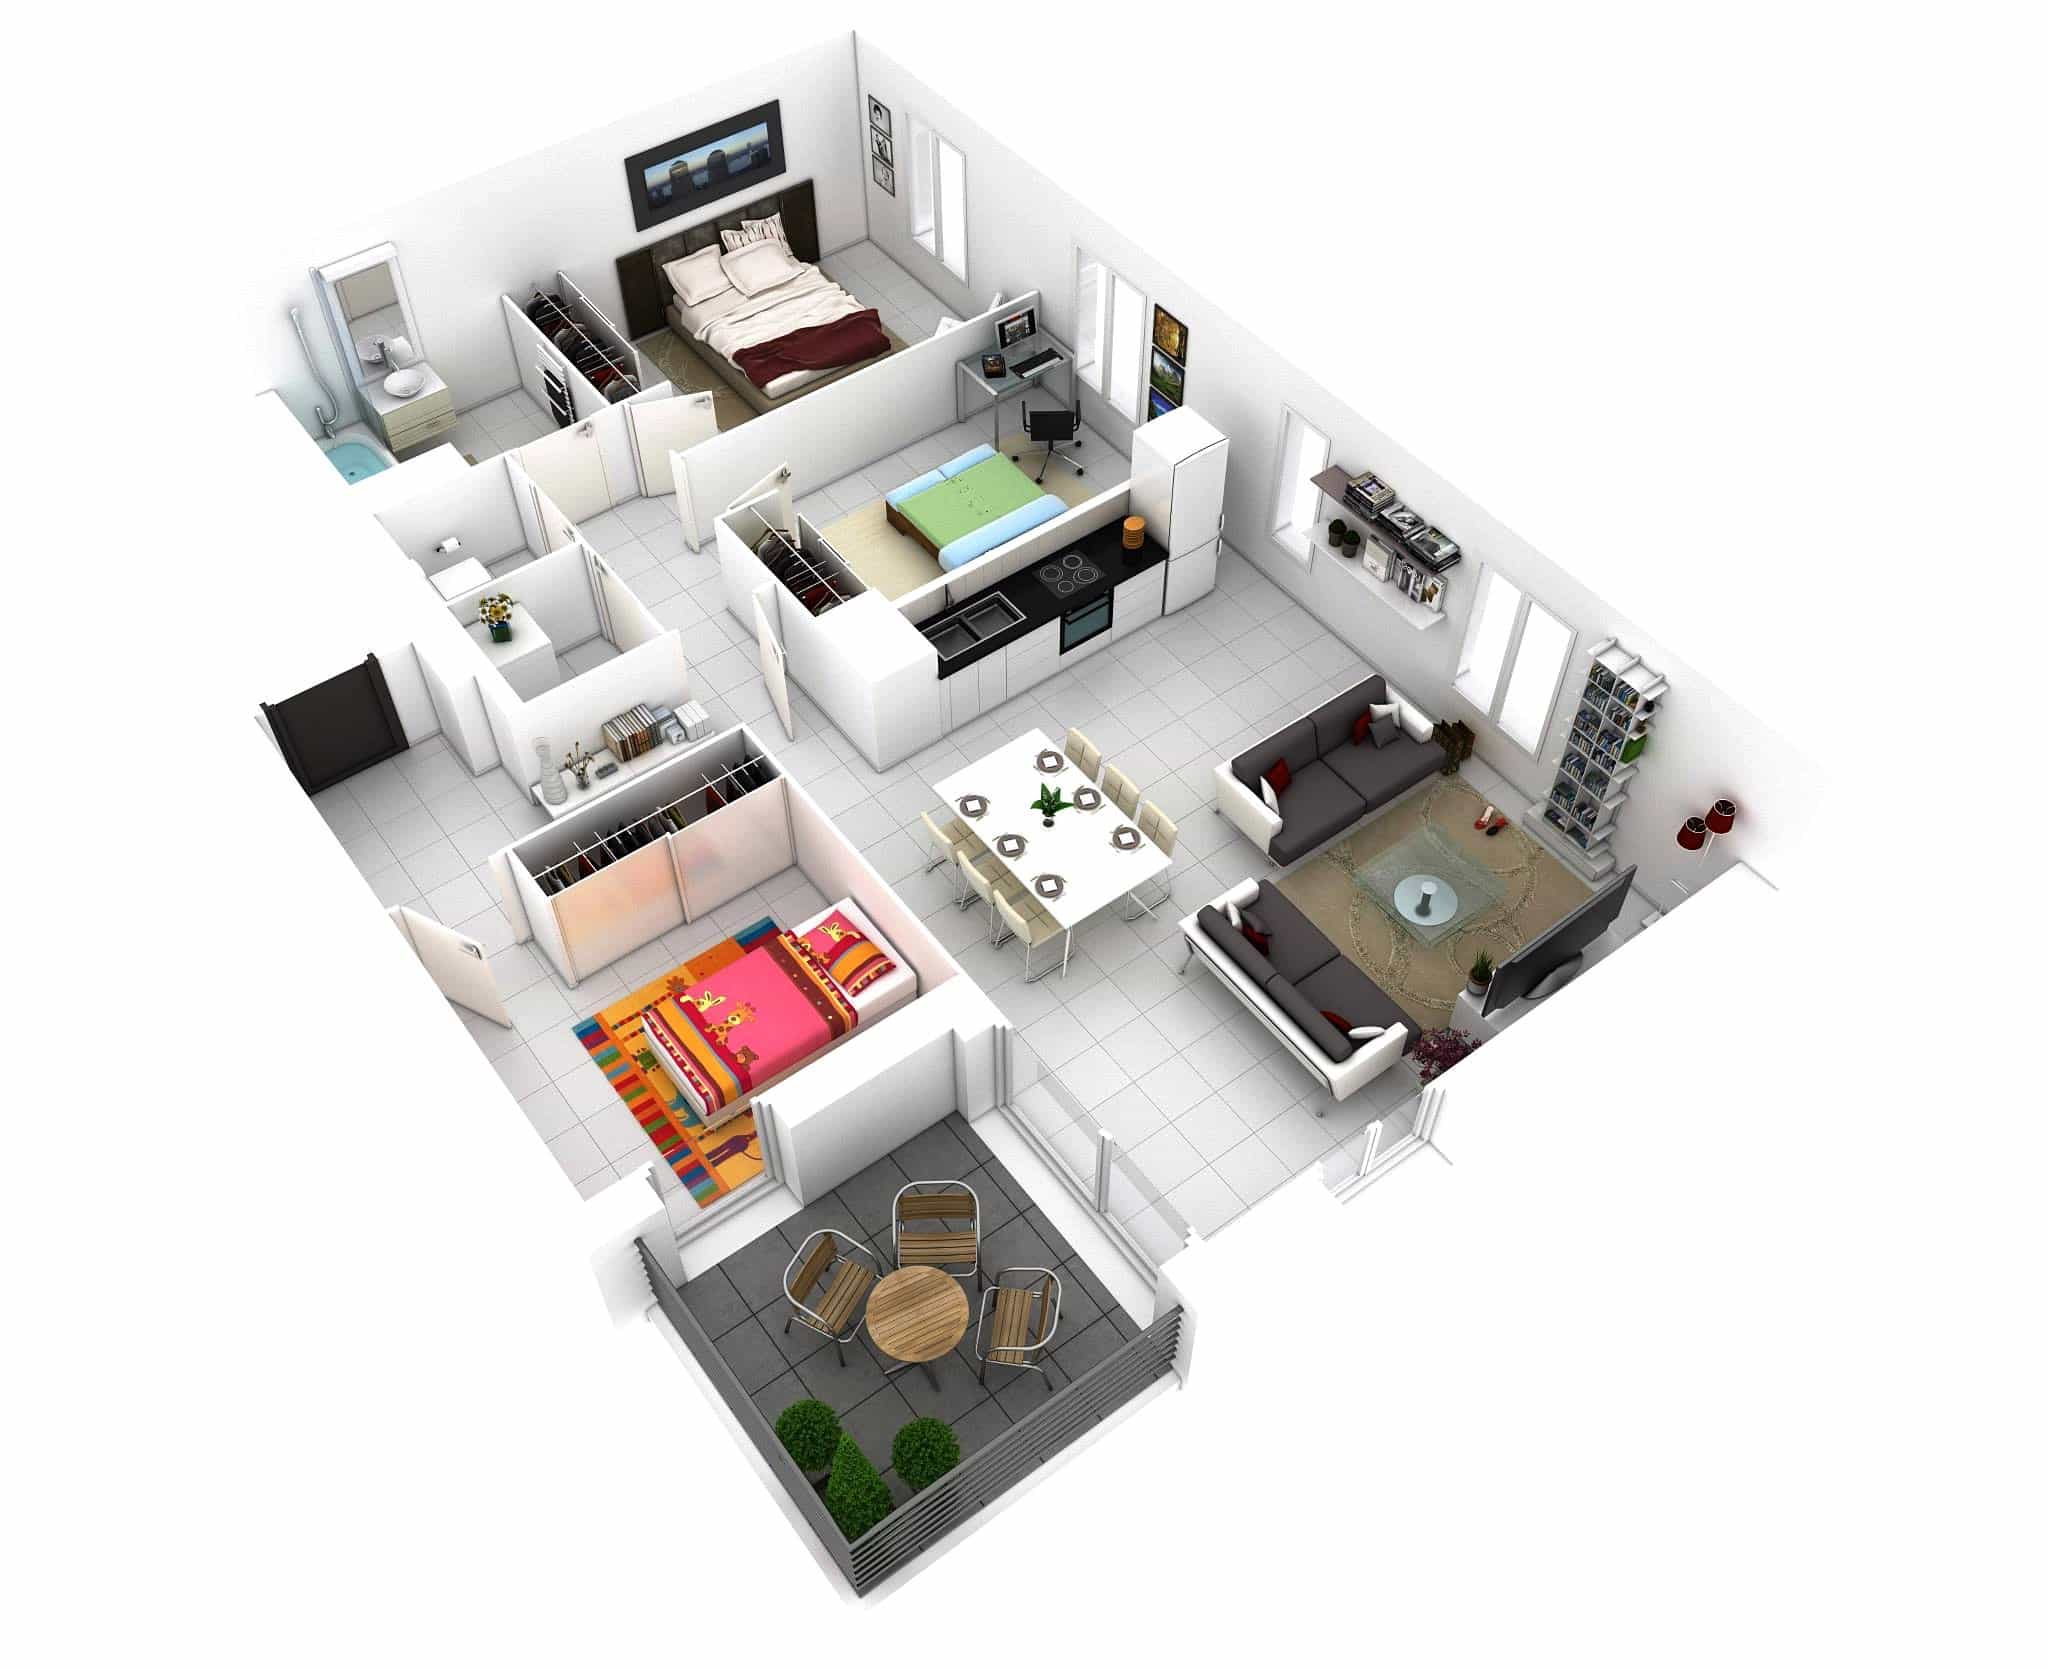 Small House Floor Plans With 3 Bedroom And 1 Bathroom 3d Layout (Image 11 of 11)